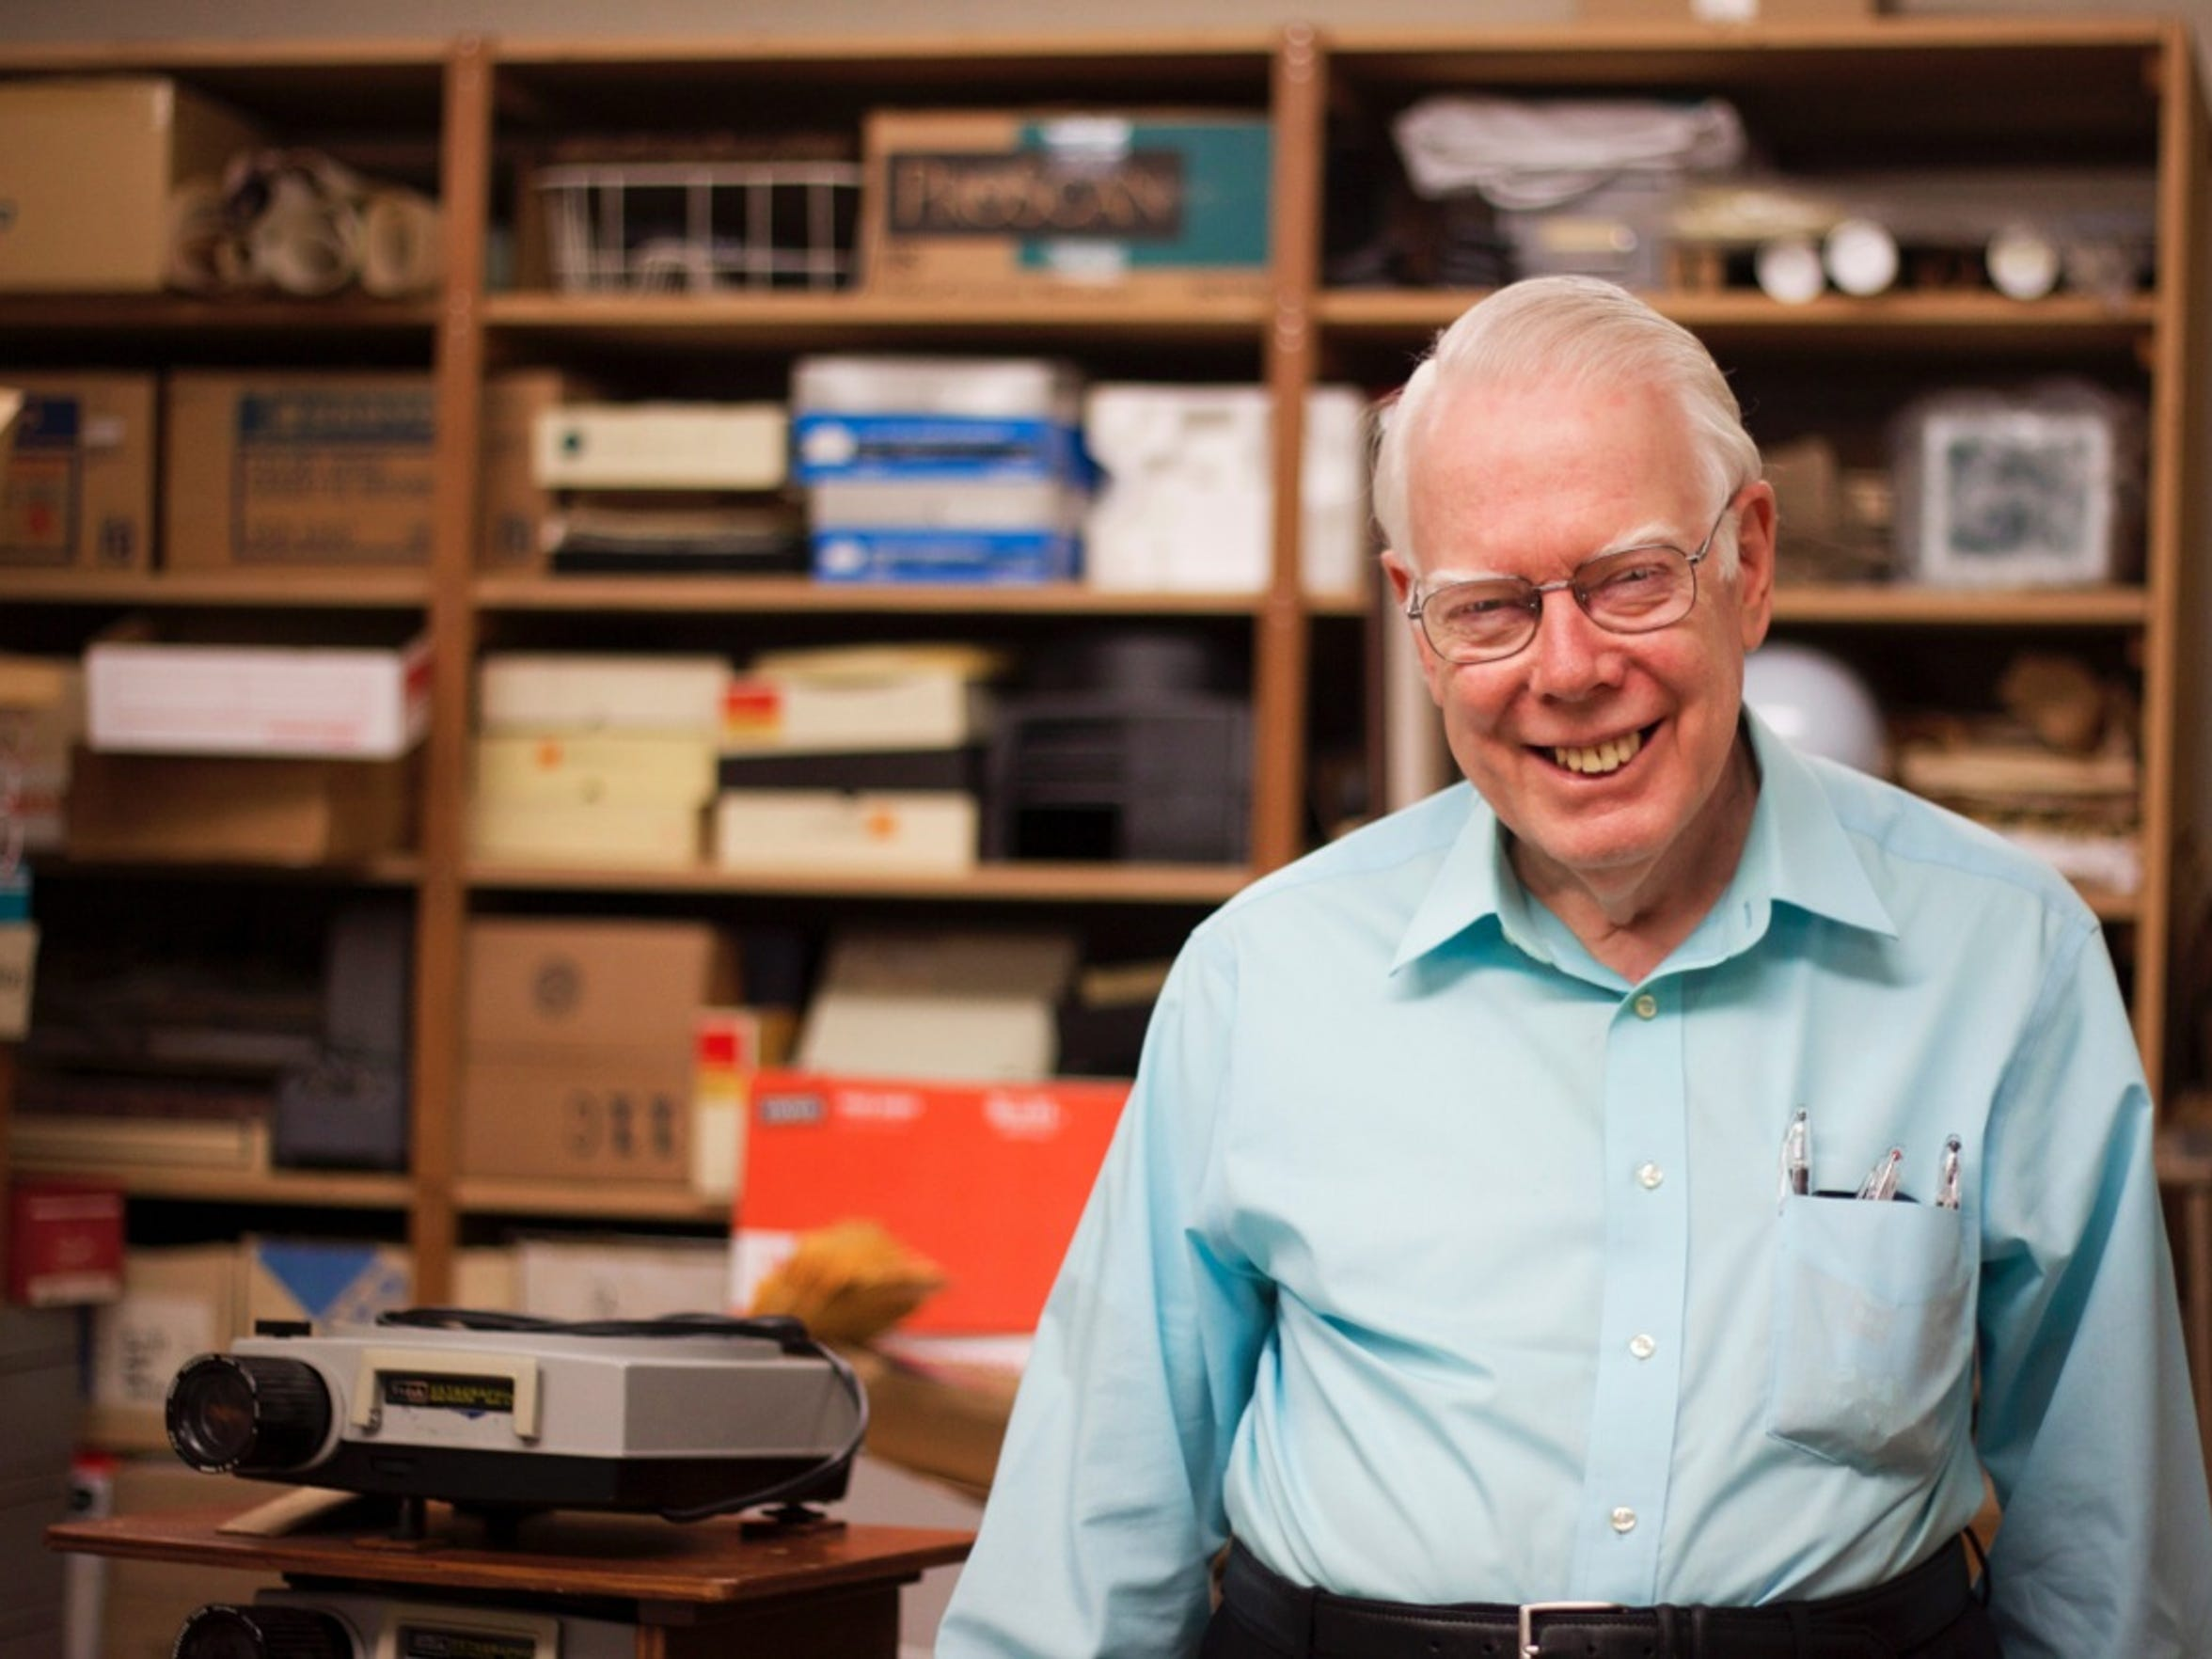 Frank Kujawa has worked at UCF for the past 45 years,